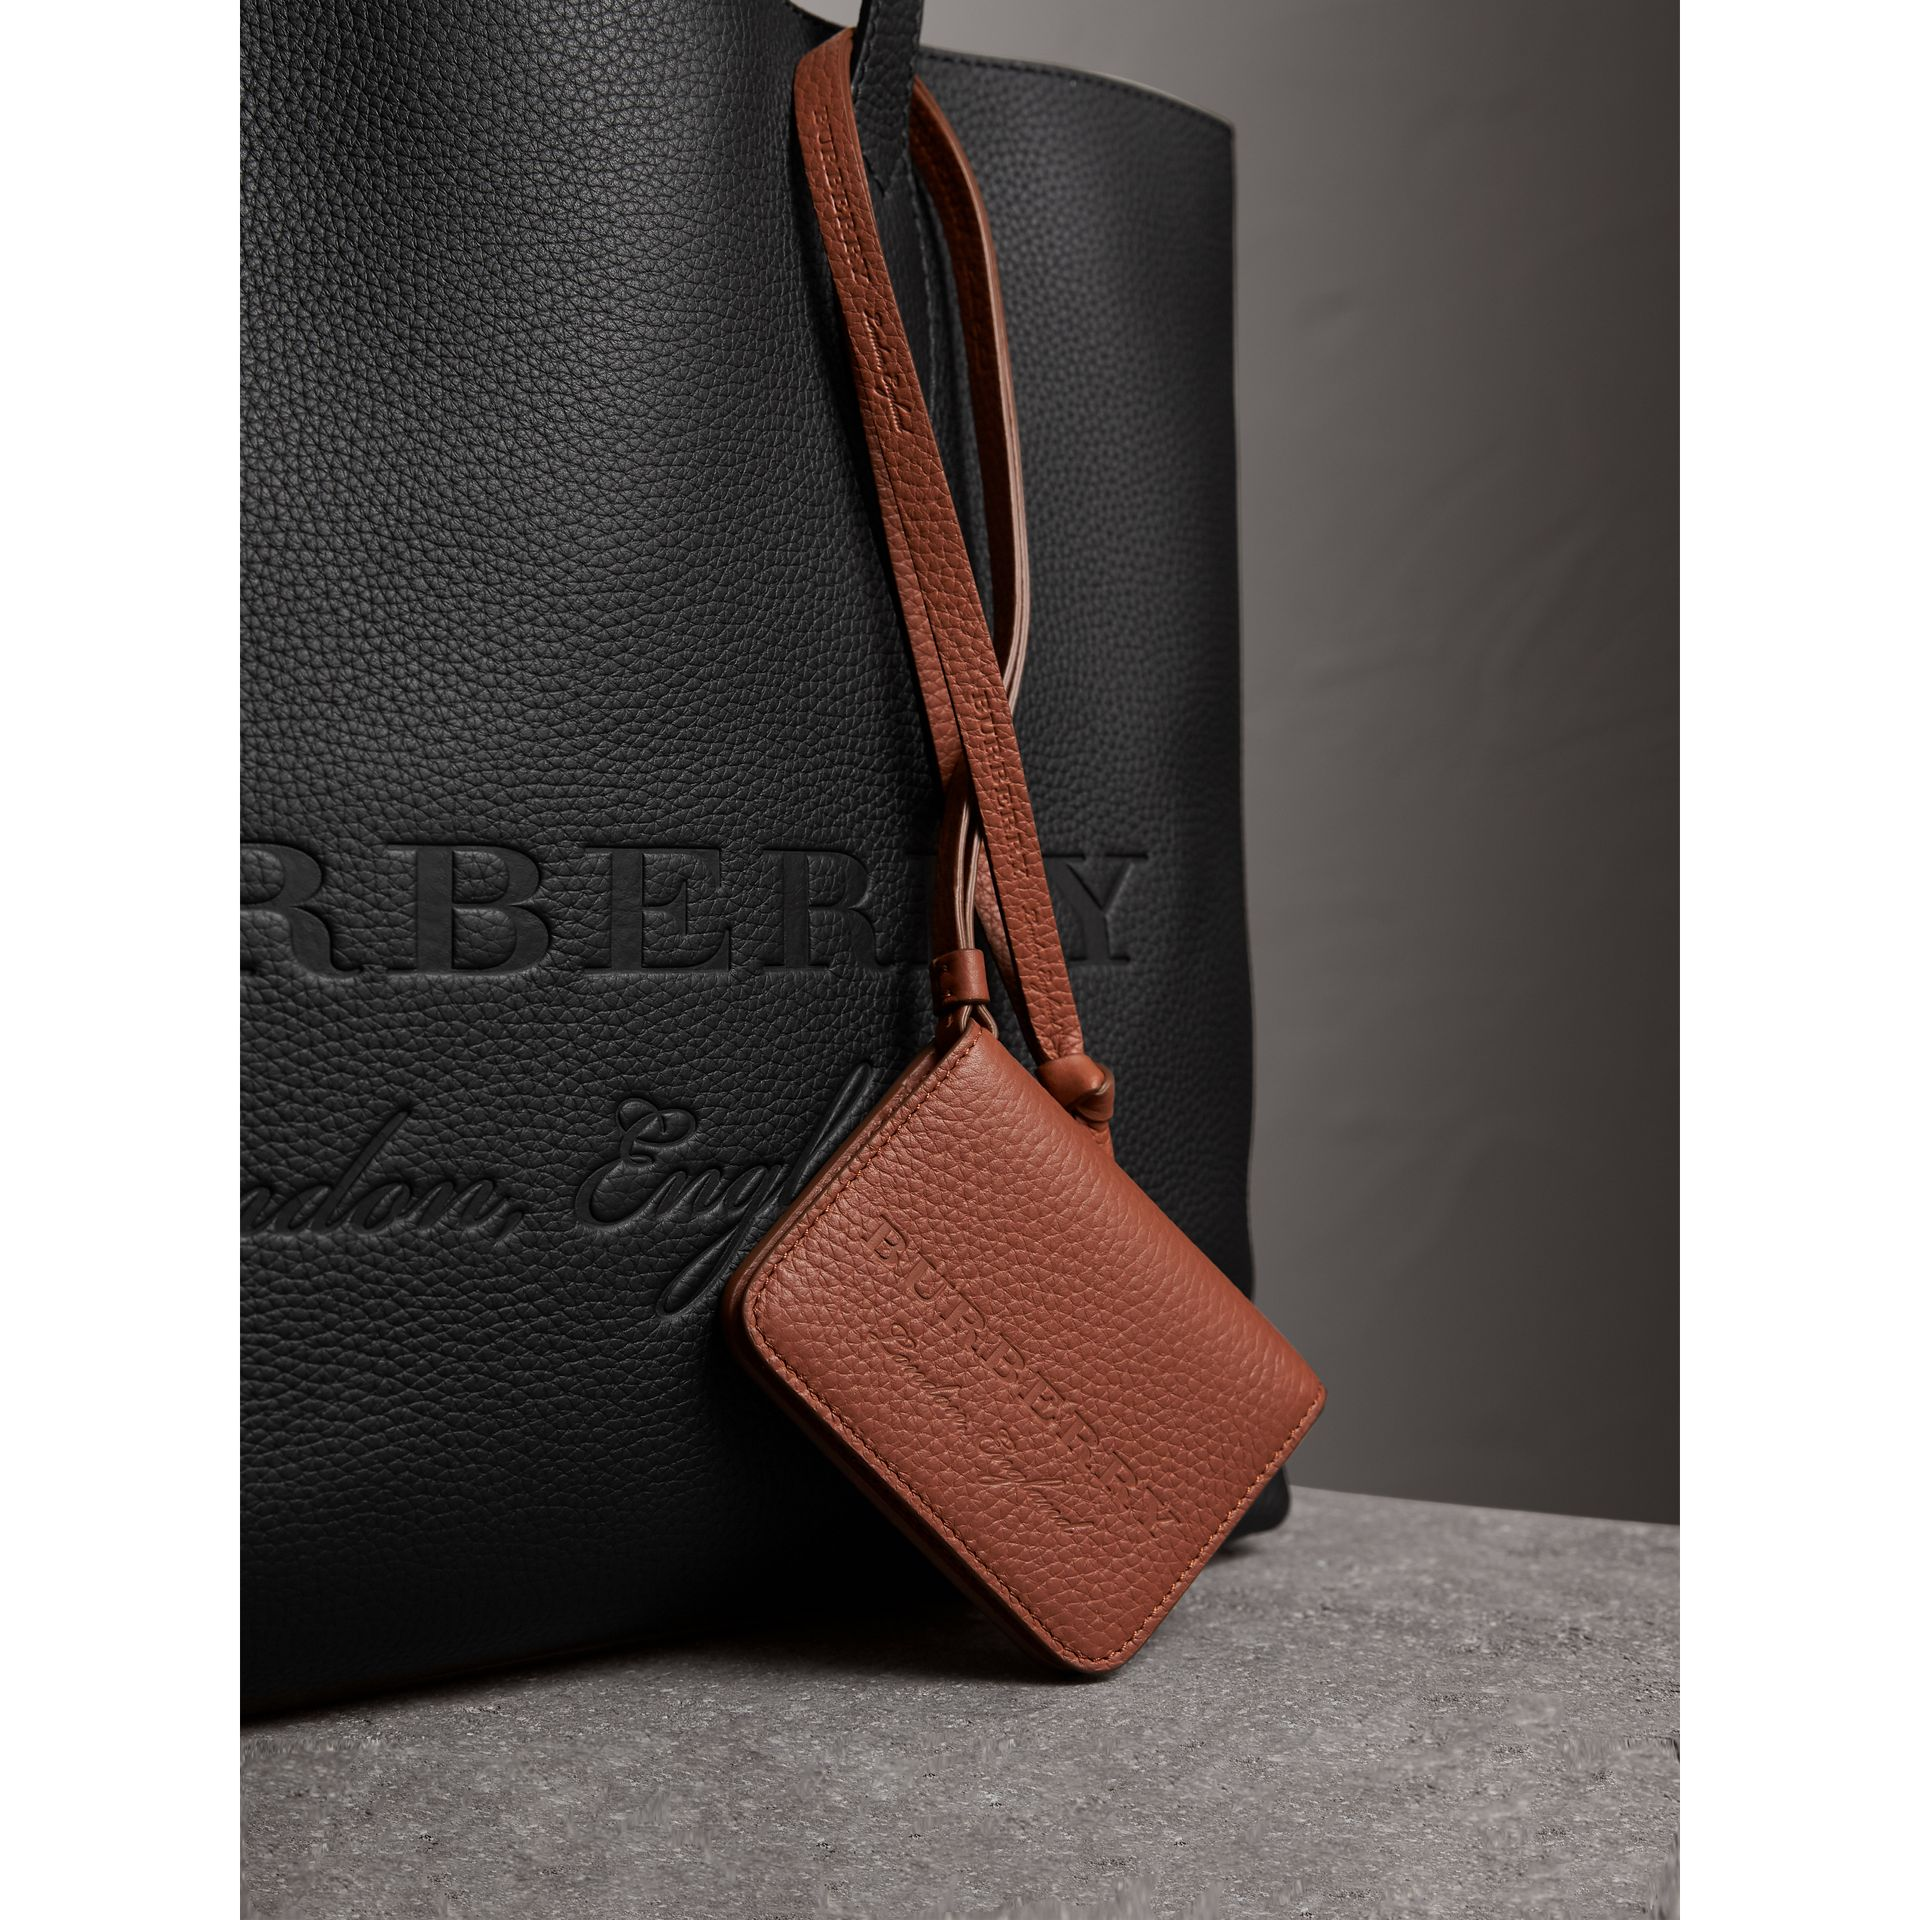 Embossed Leather ID Card Case Charm in Chestnut Brown - Women | Burberry - gallery image 2